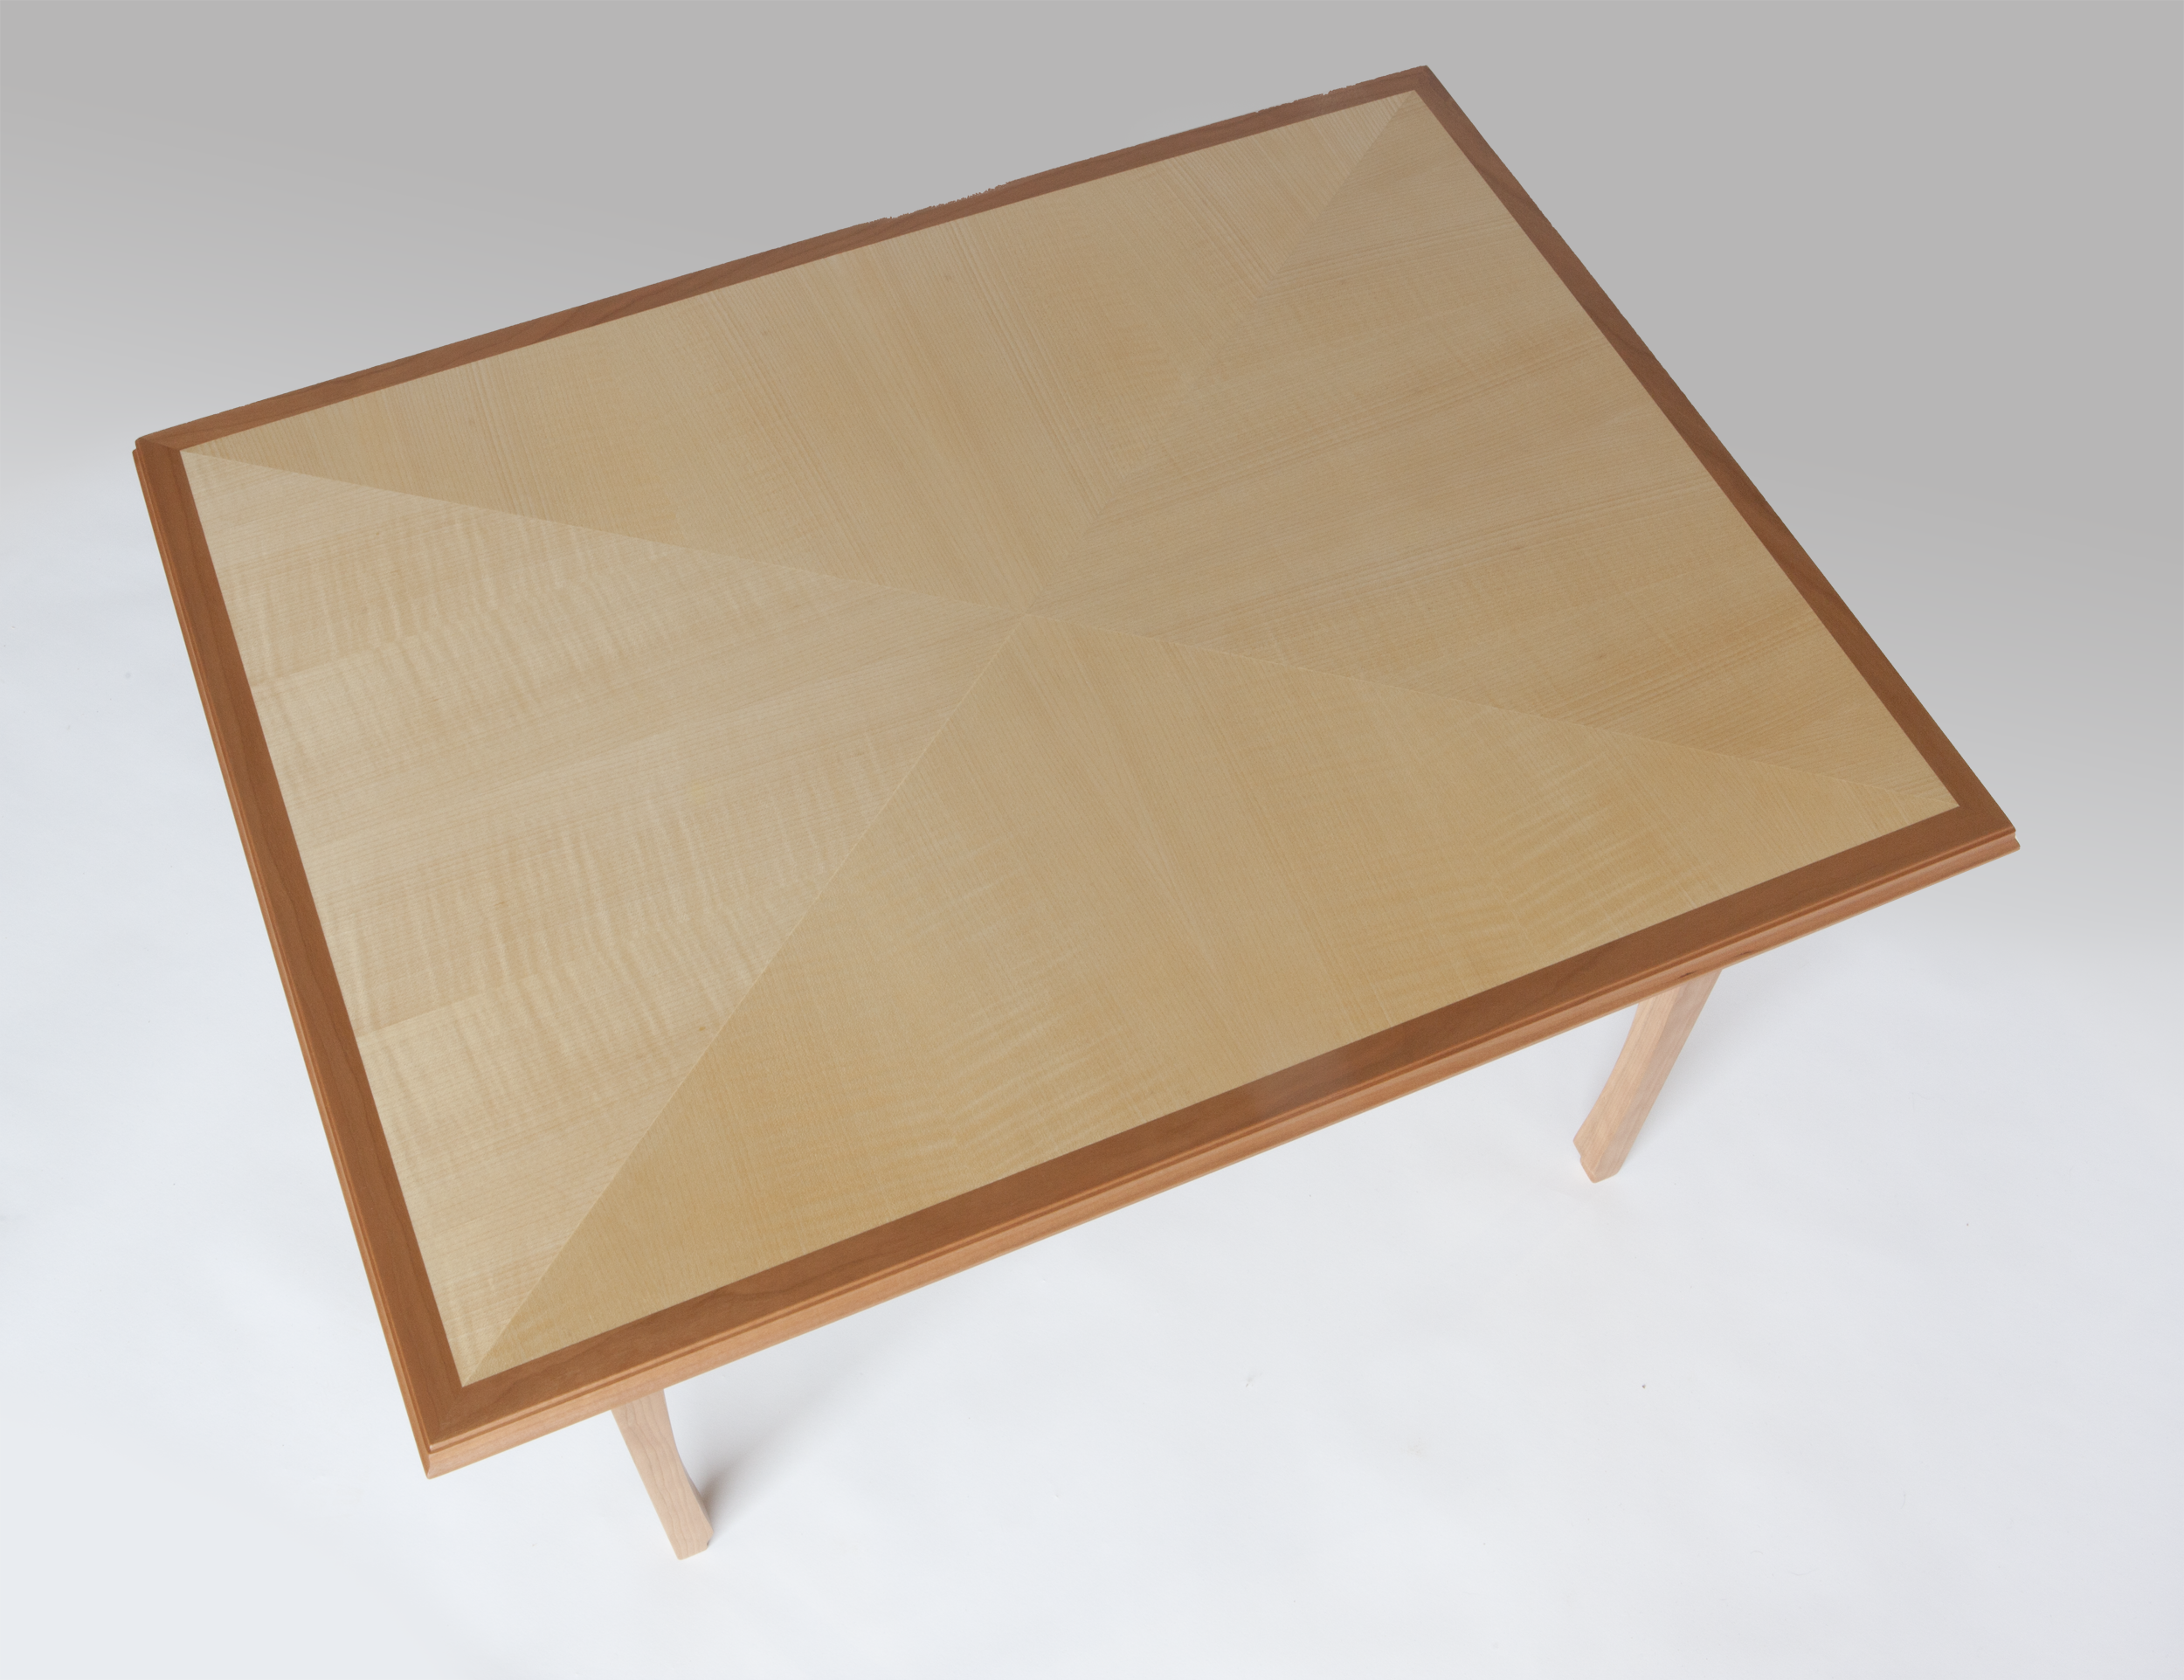 """Coffee table of quarter figured sycamore, laid-up in the """"reverse diamond"""" pattern with cherrywood edge, trim and base. Of note is how the reverse diamond pattern changes contrast with its angle to the light.  Dimensions: 33"""" x 25"""" x 20"""" high  Design by Reznikoff Custom Furniture"""